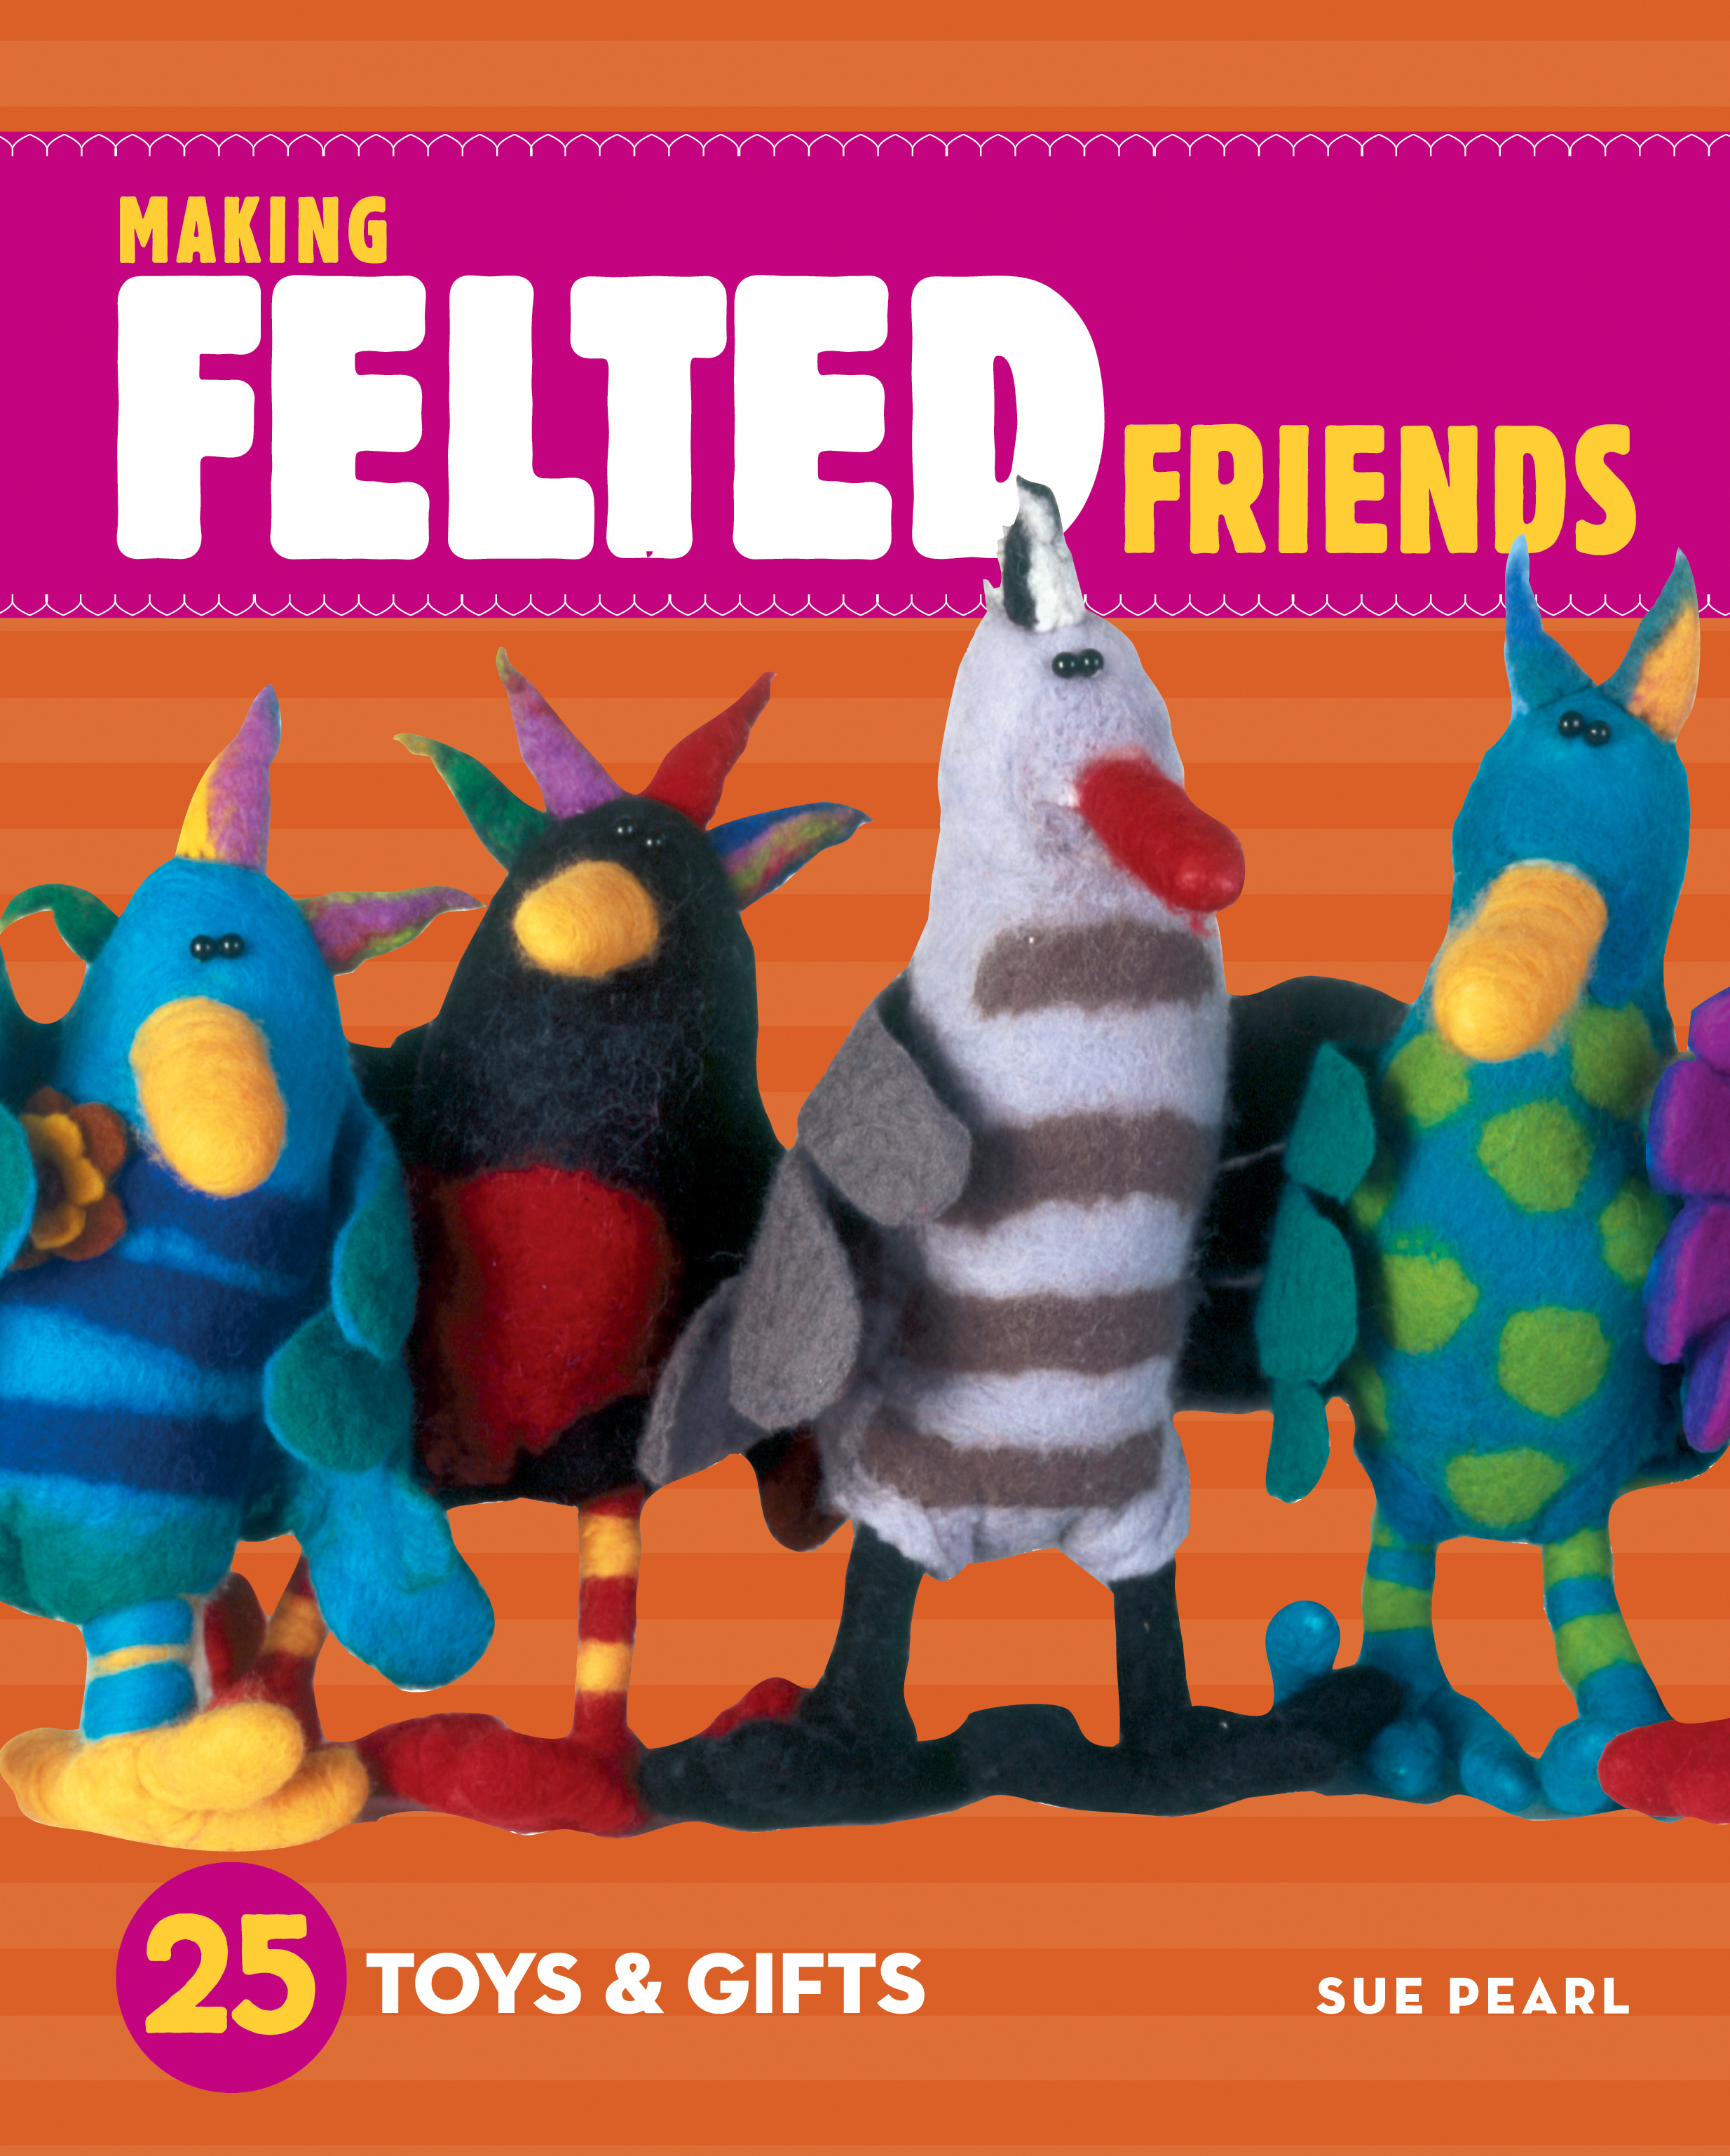 Making Felted Friends 25 Toys & Gifts - Sue Pearl